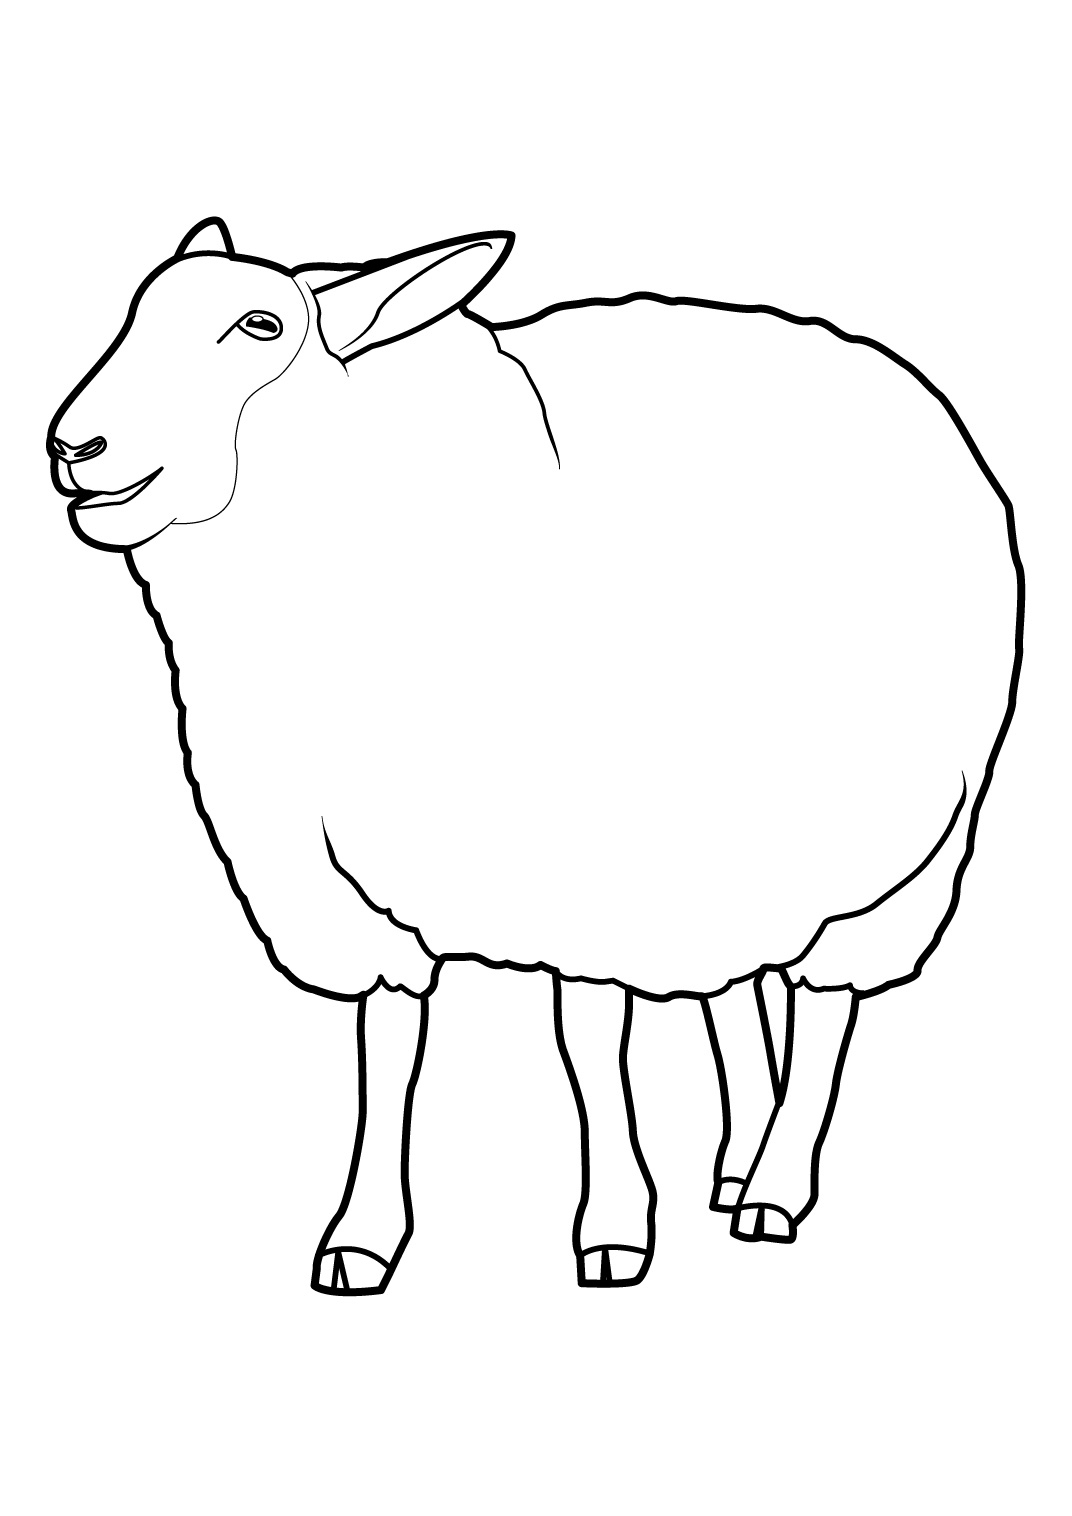 Mouton #14 (Animaux) – Coloriages À Imprimer encequiconcerne Mouton À Colorier